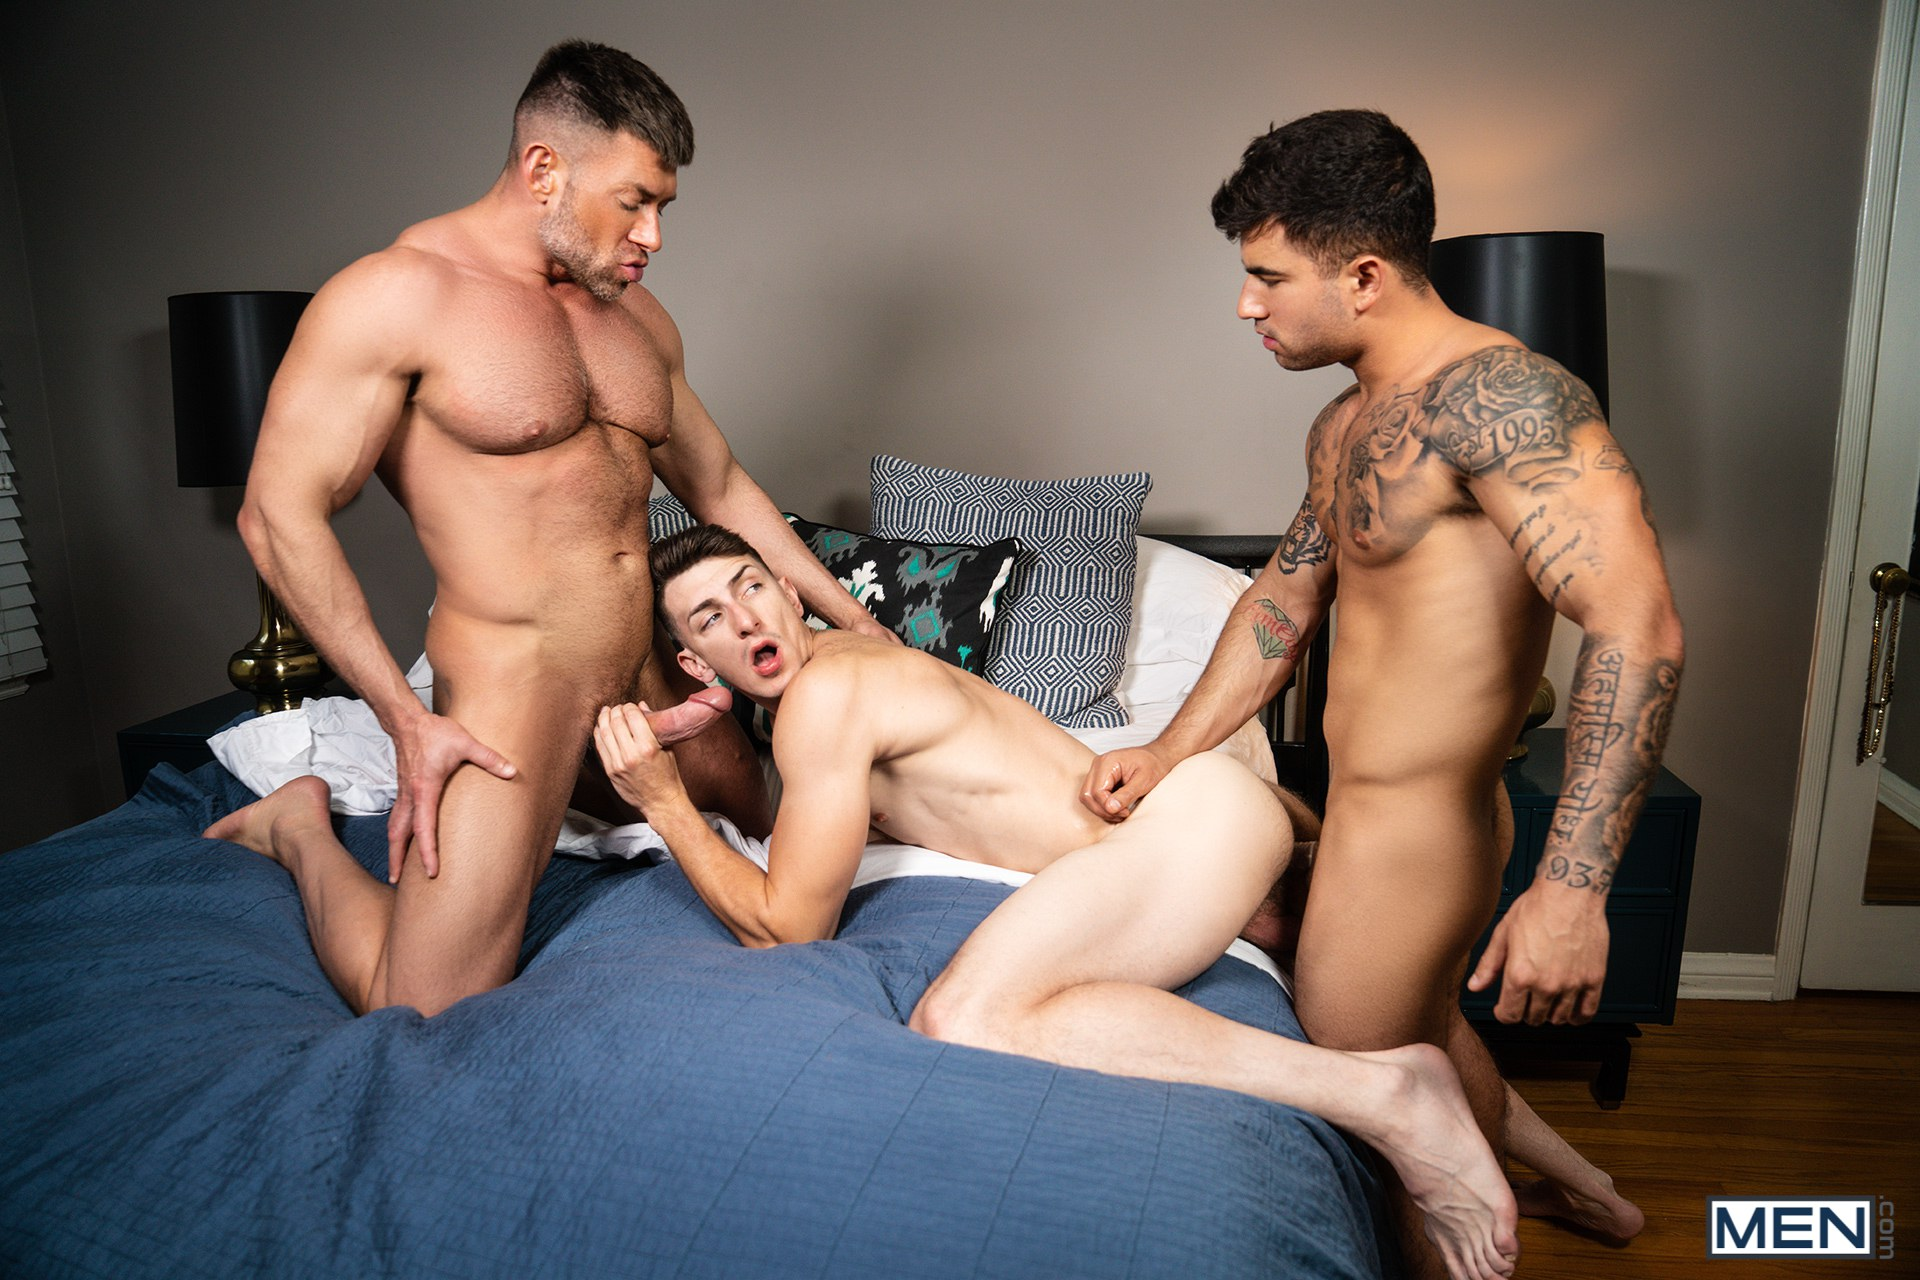 Gay porn stars having a hardcore threesome